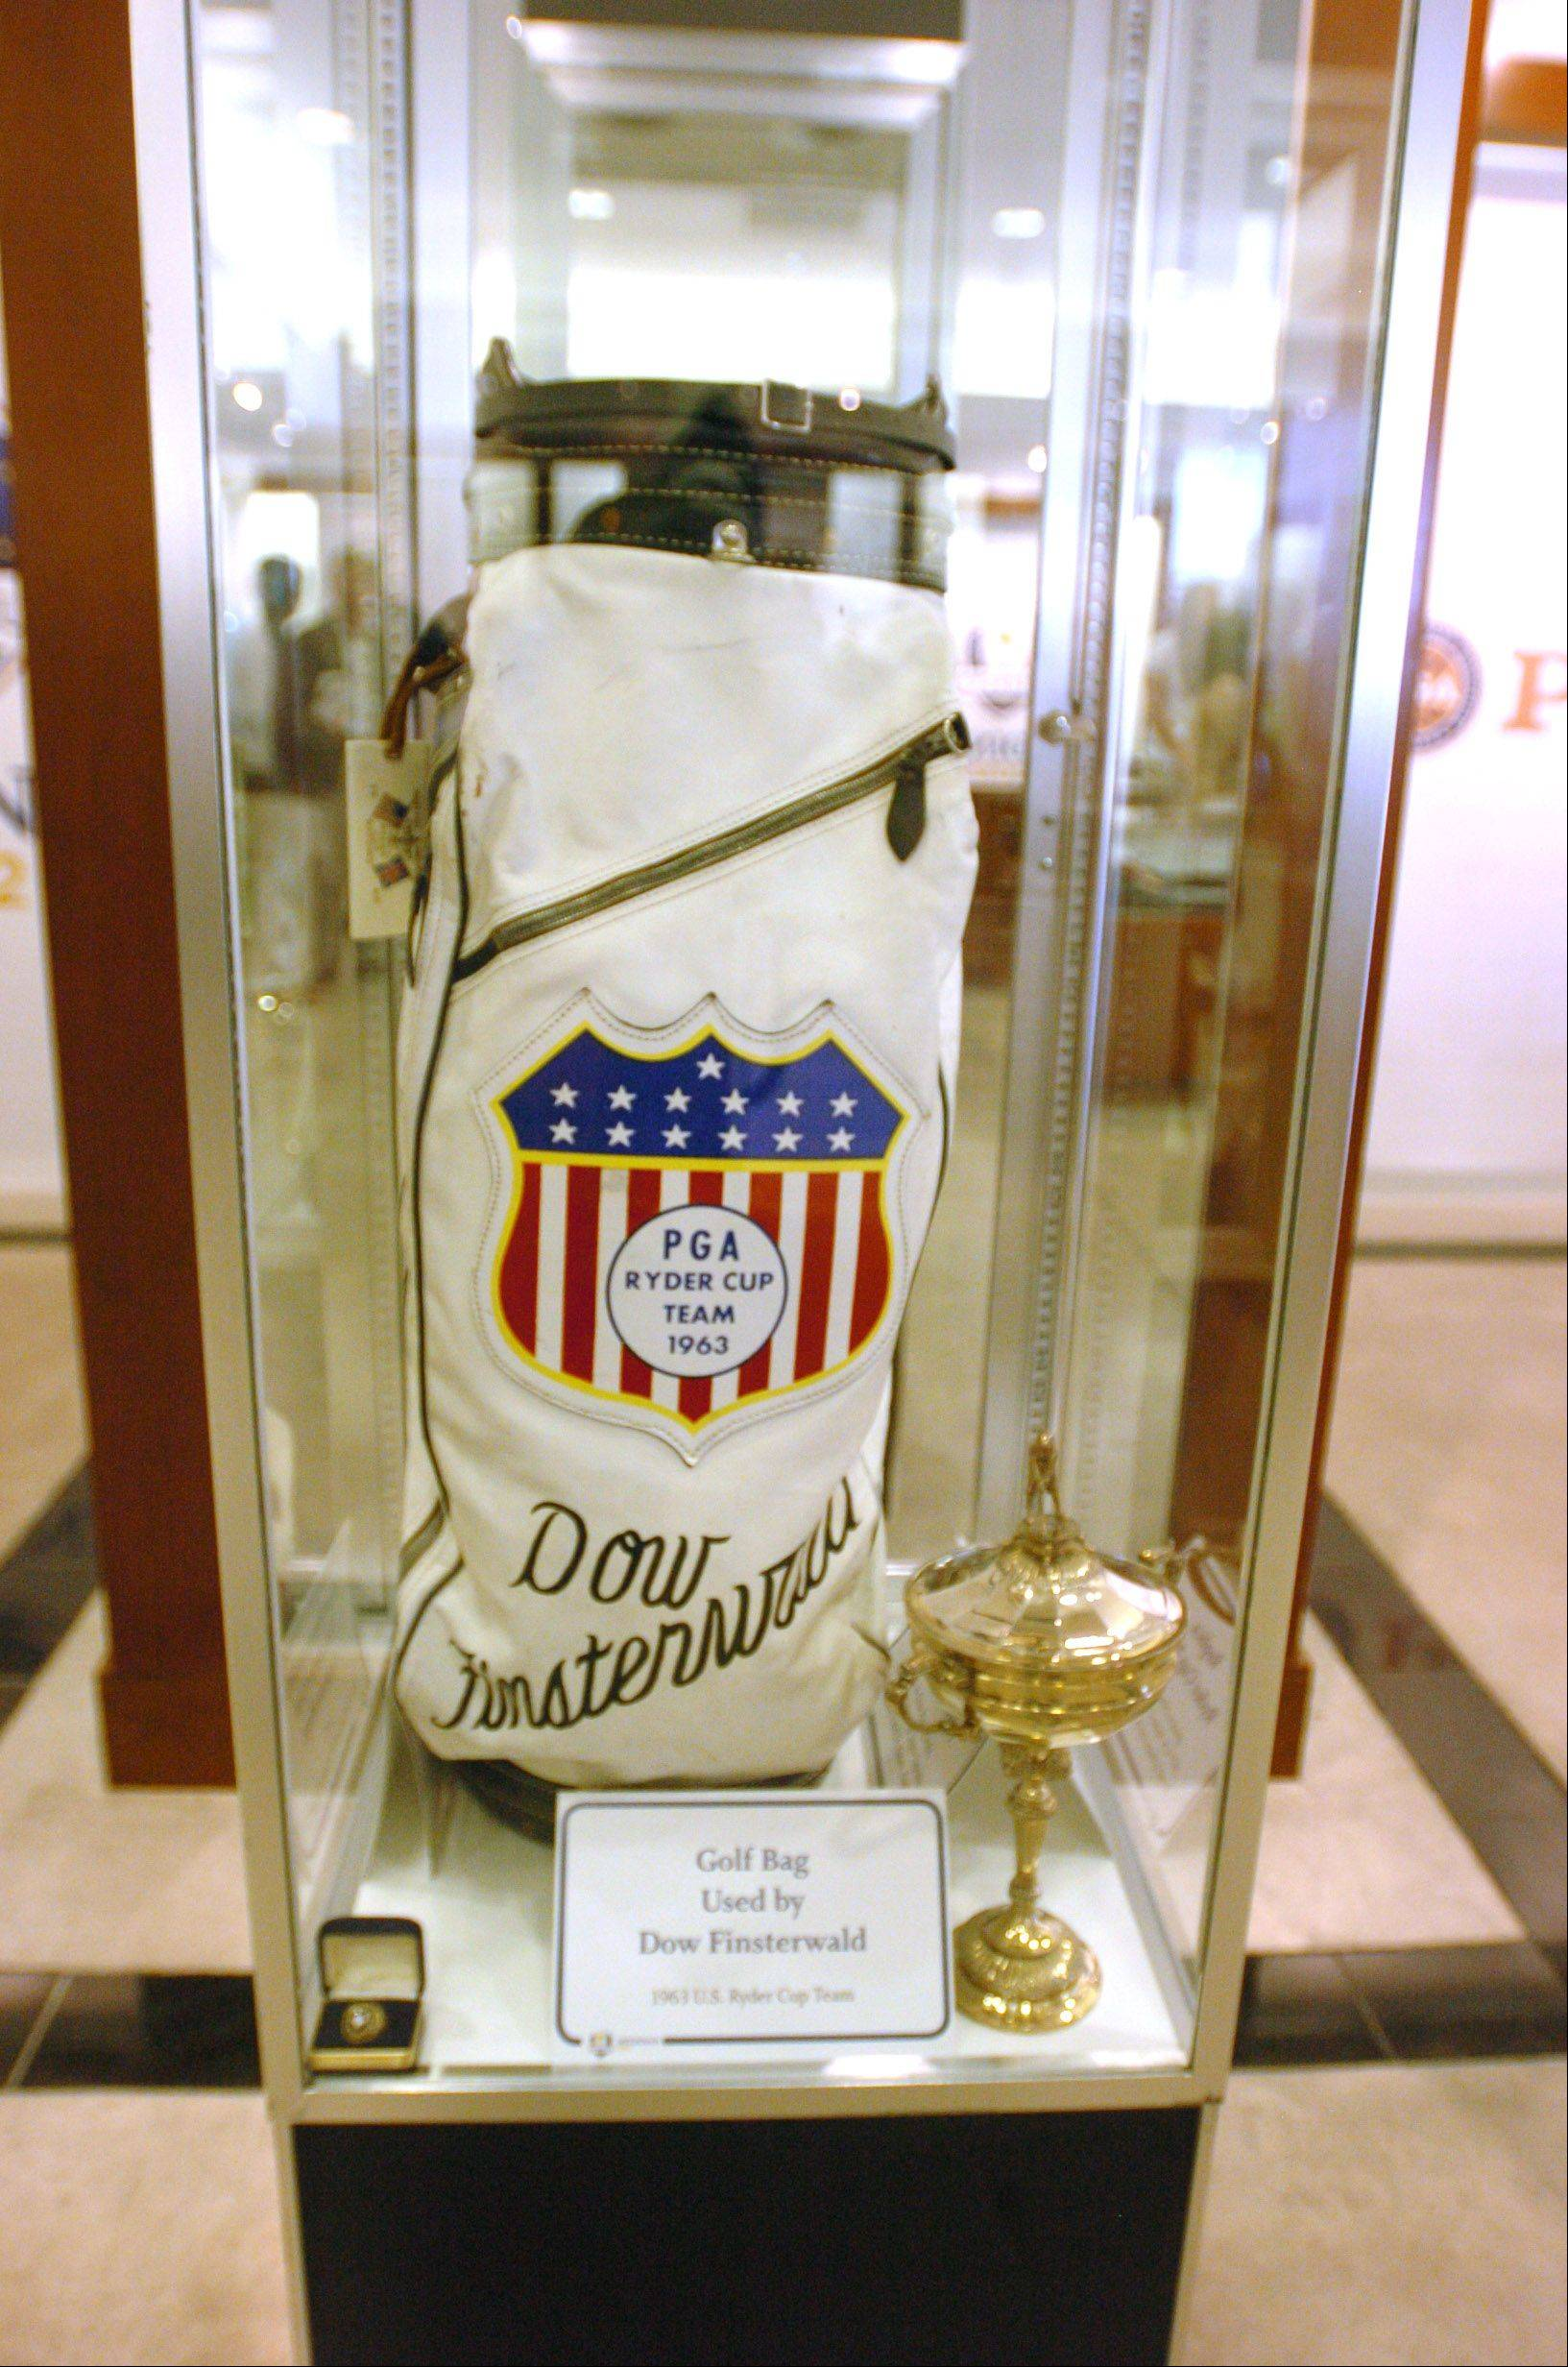 This golf bag was used by Dow Finsterwald for the 1963 Ryder Cup.